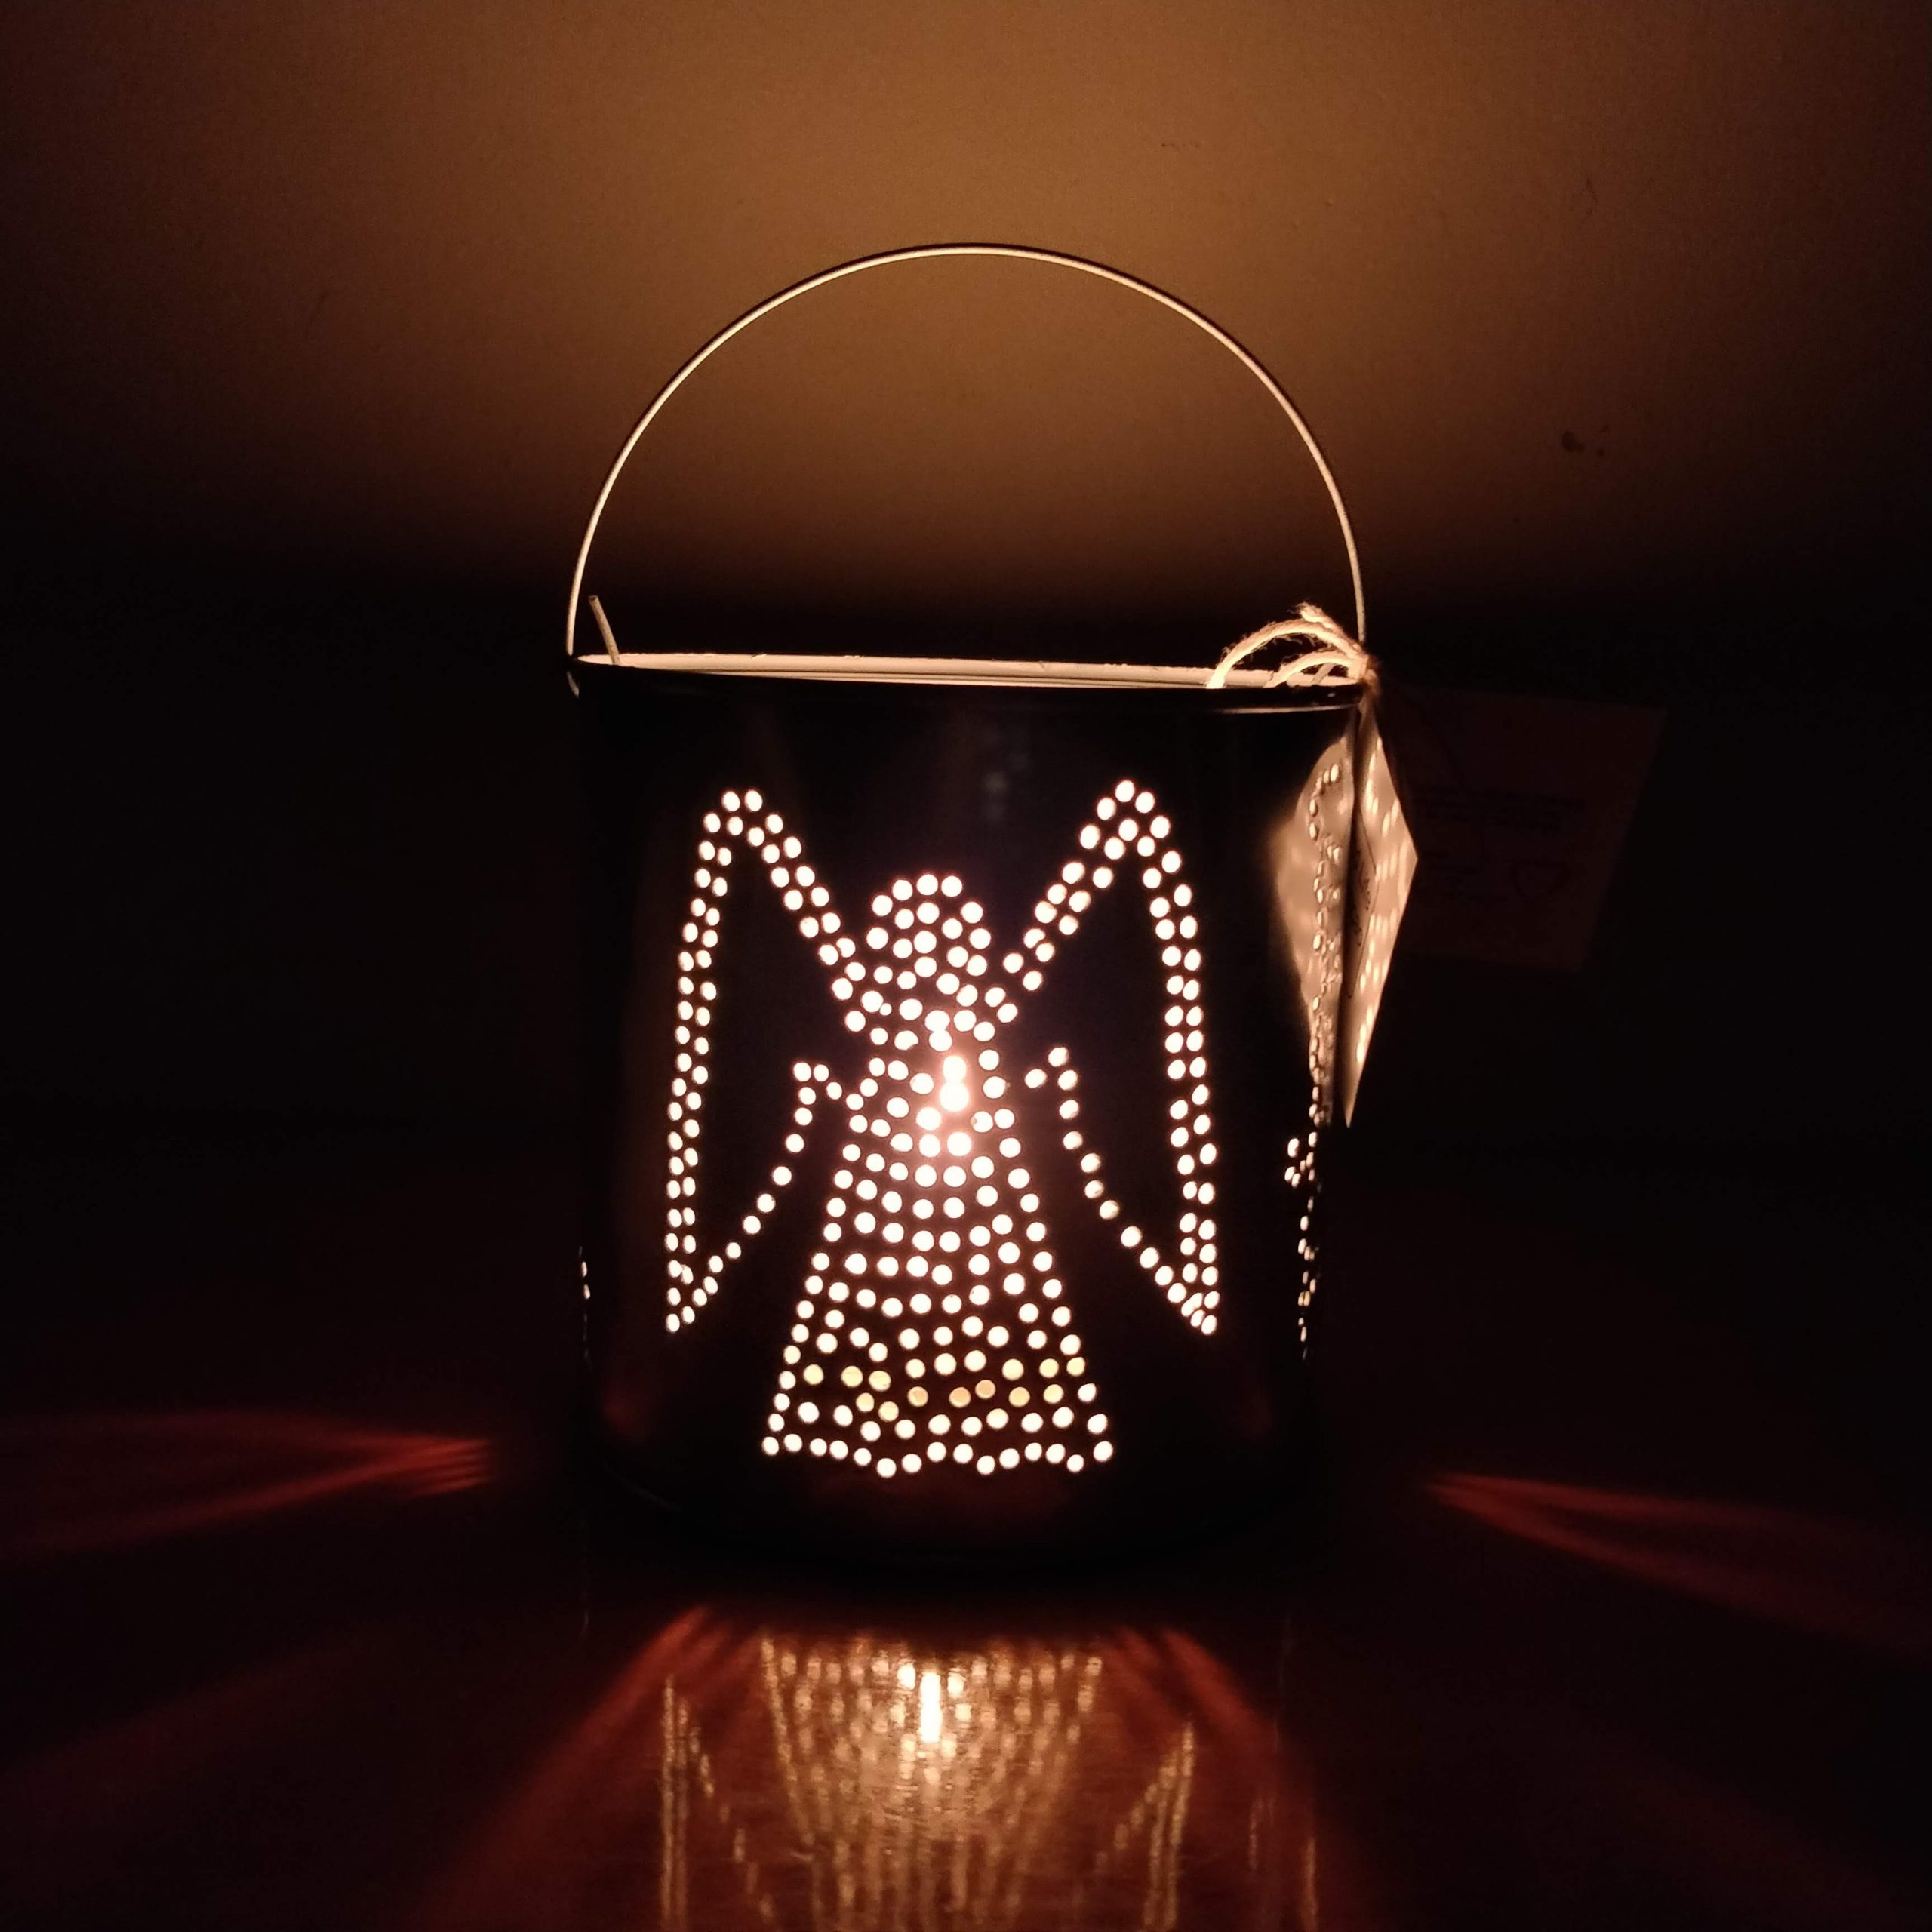 Angel Lantern Recycled Art Candle Light Holder Lantern Made in Curacao